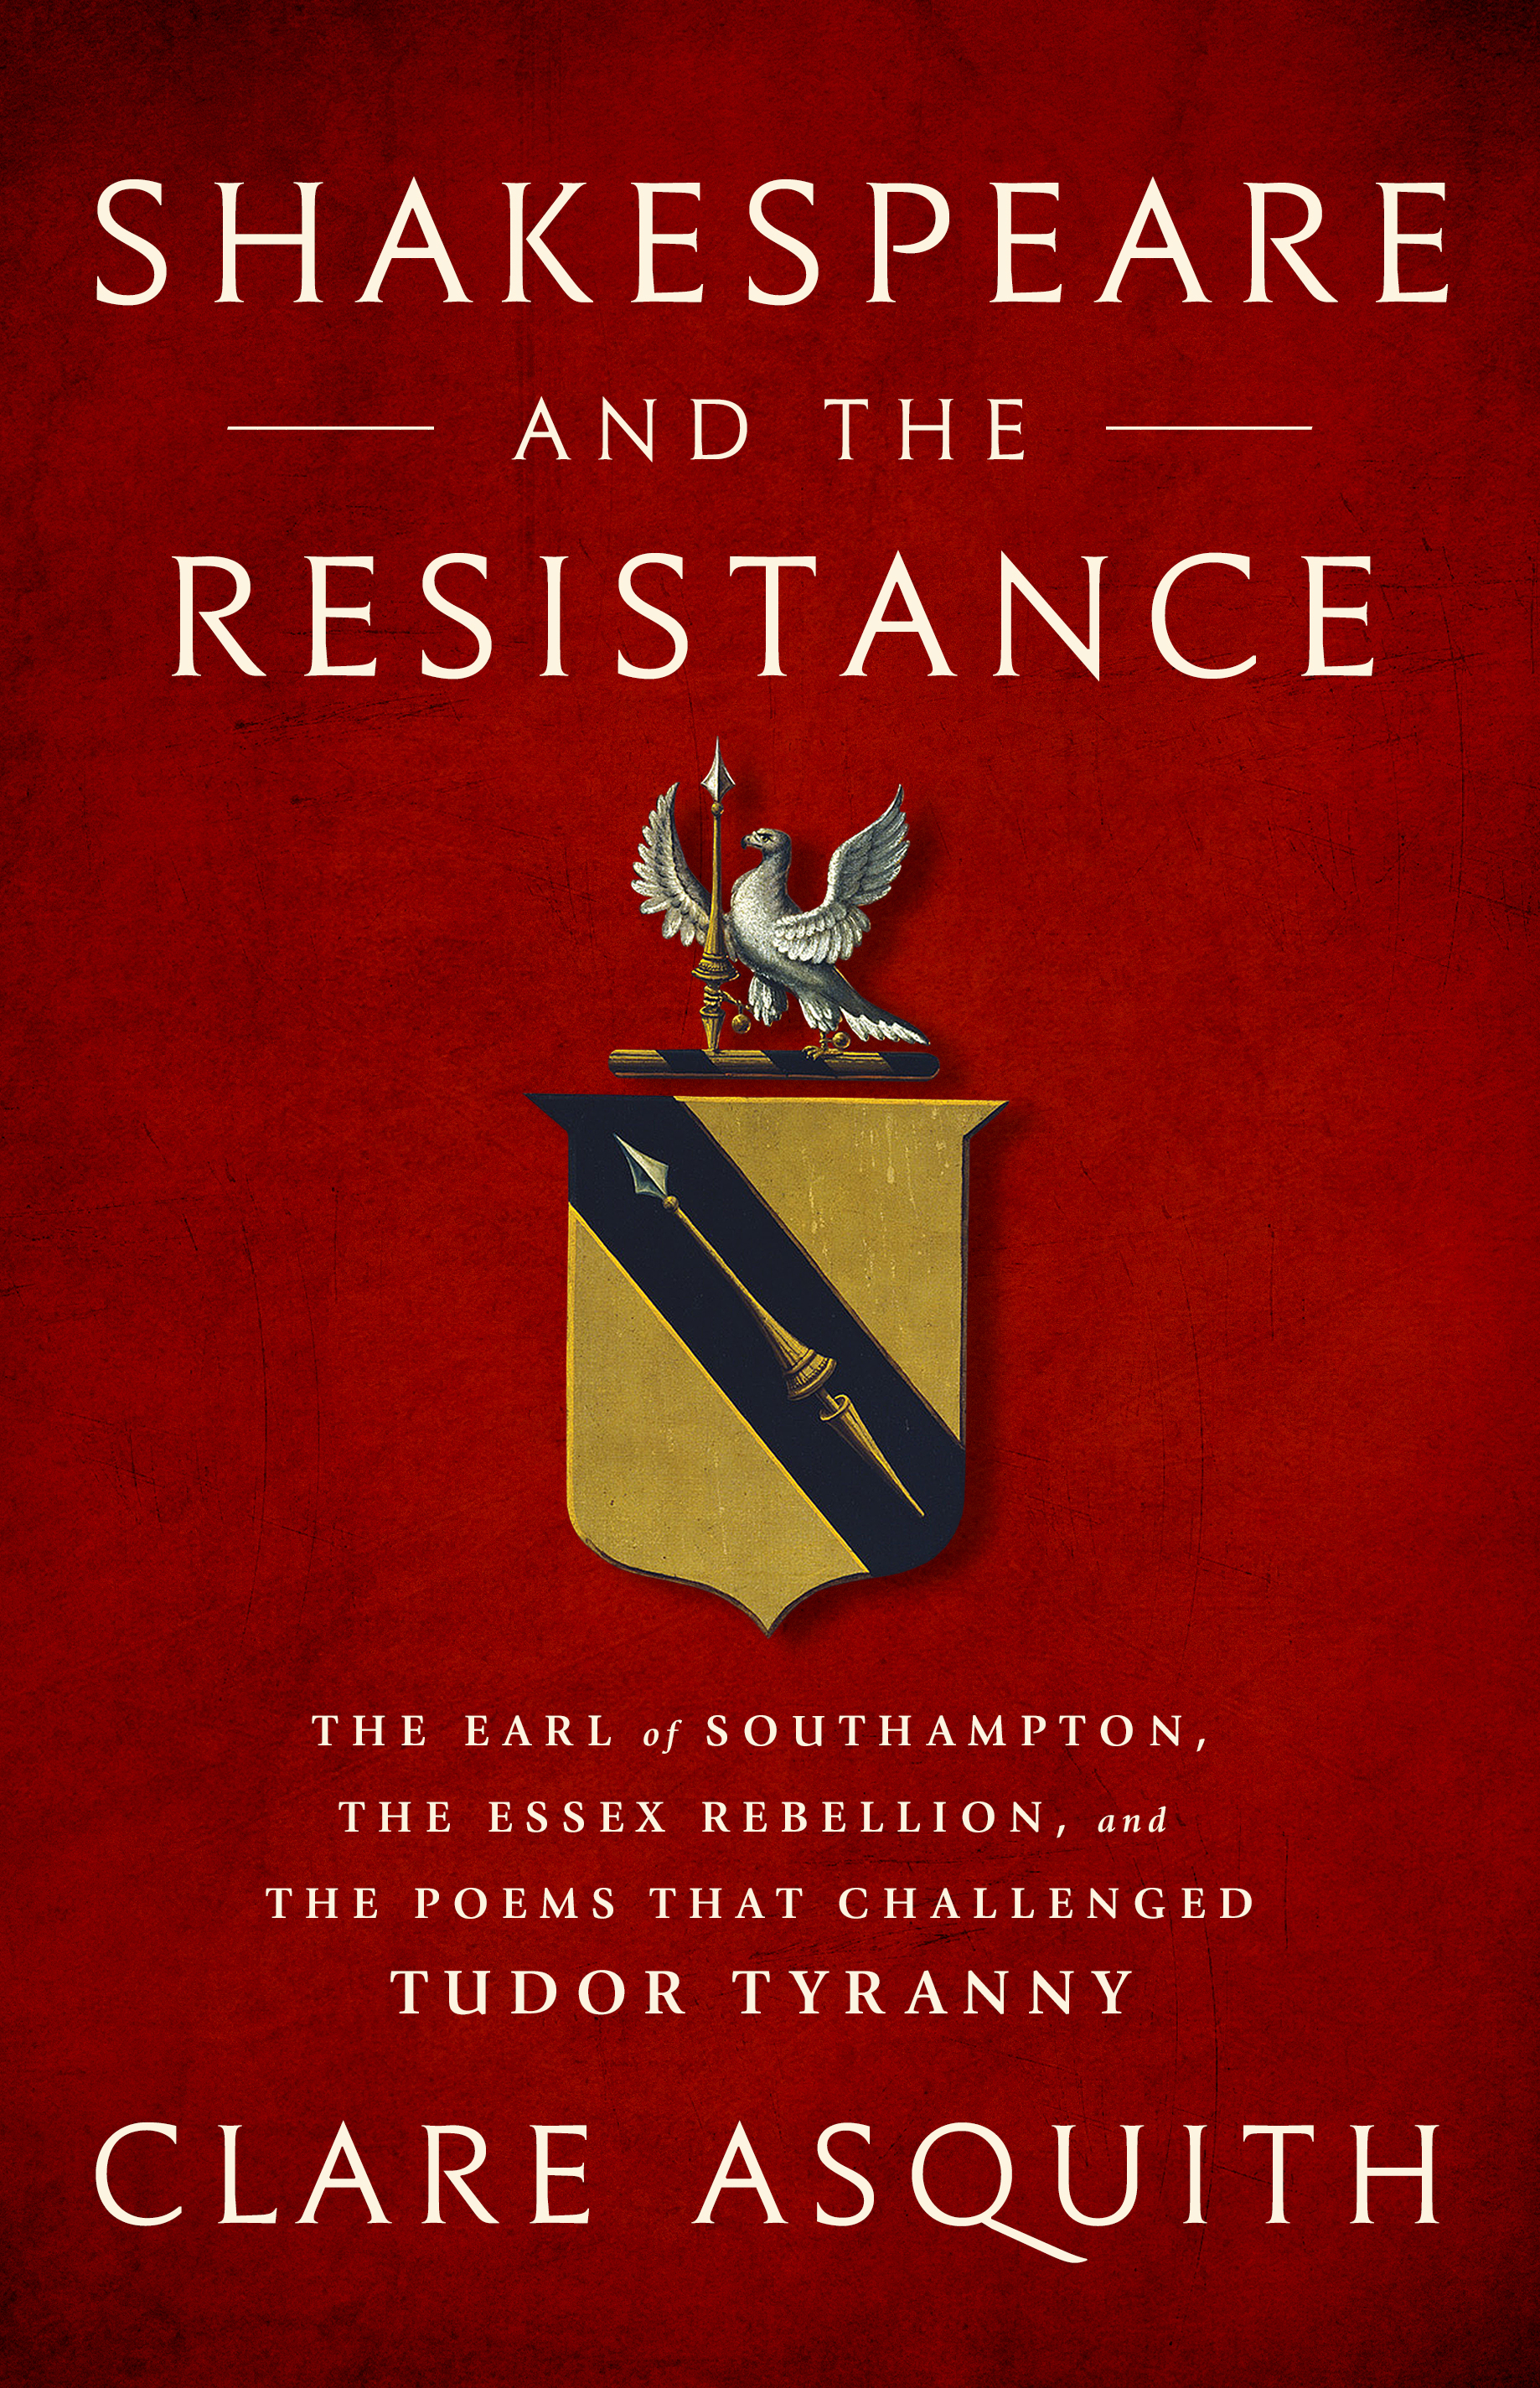 SHAKESPEARE AND THE RESISTANCE by Clare Asquith